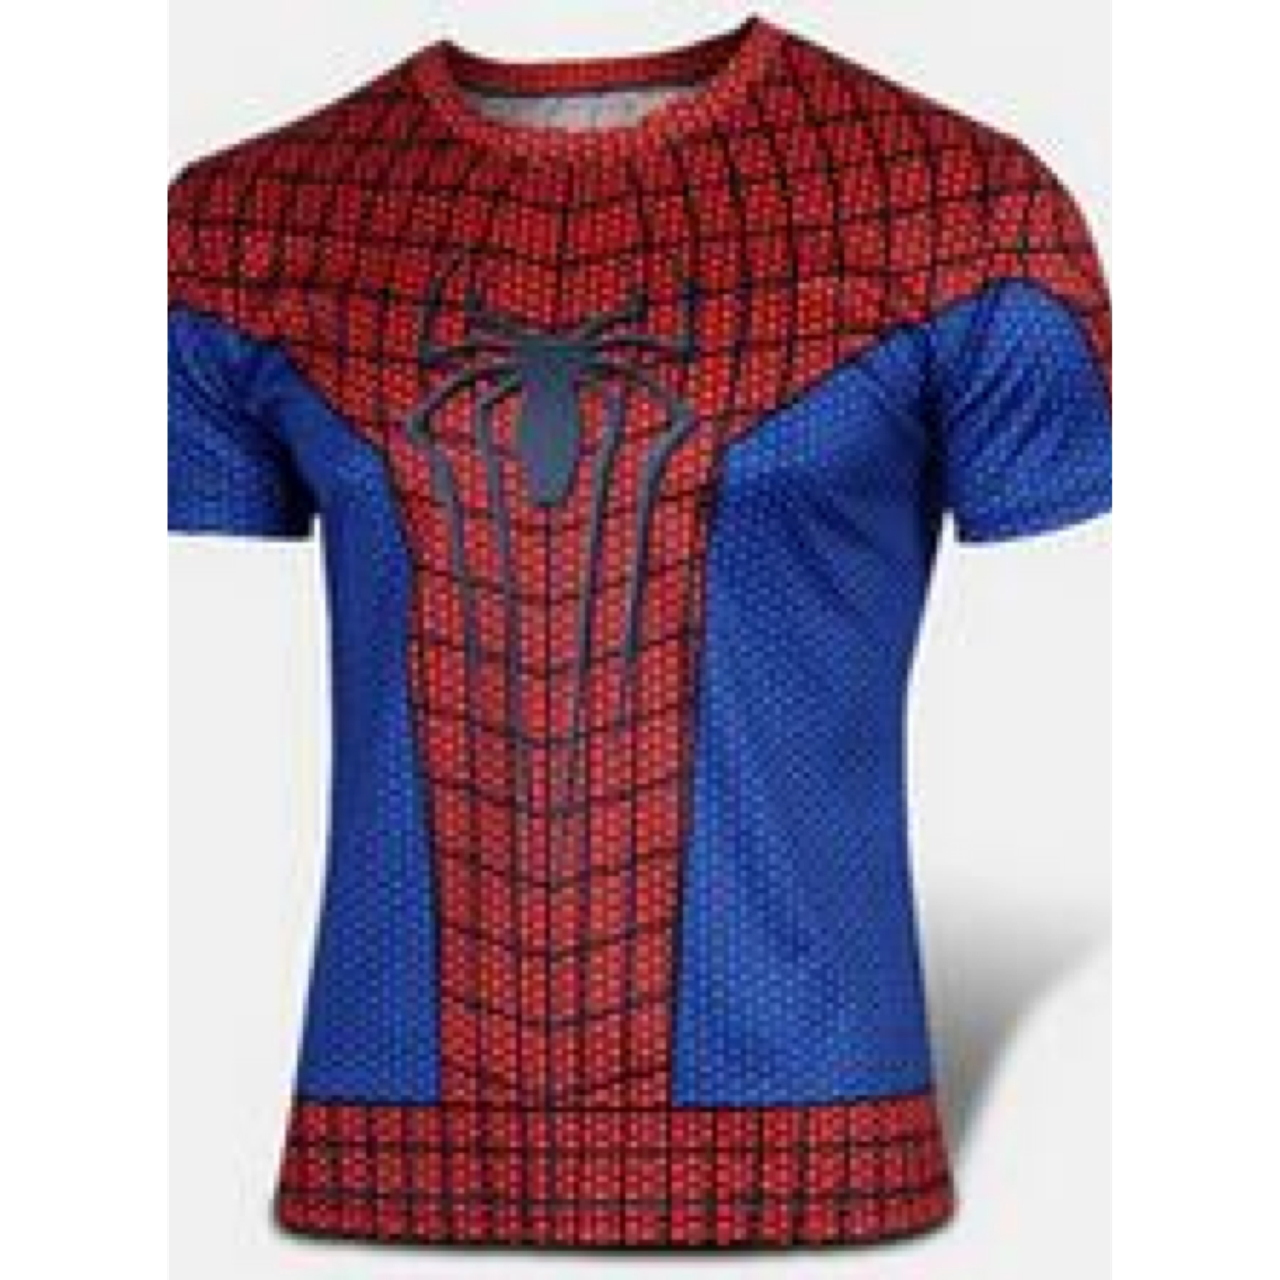 Kaos Superhero Spiderman Dewasa